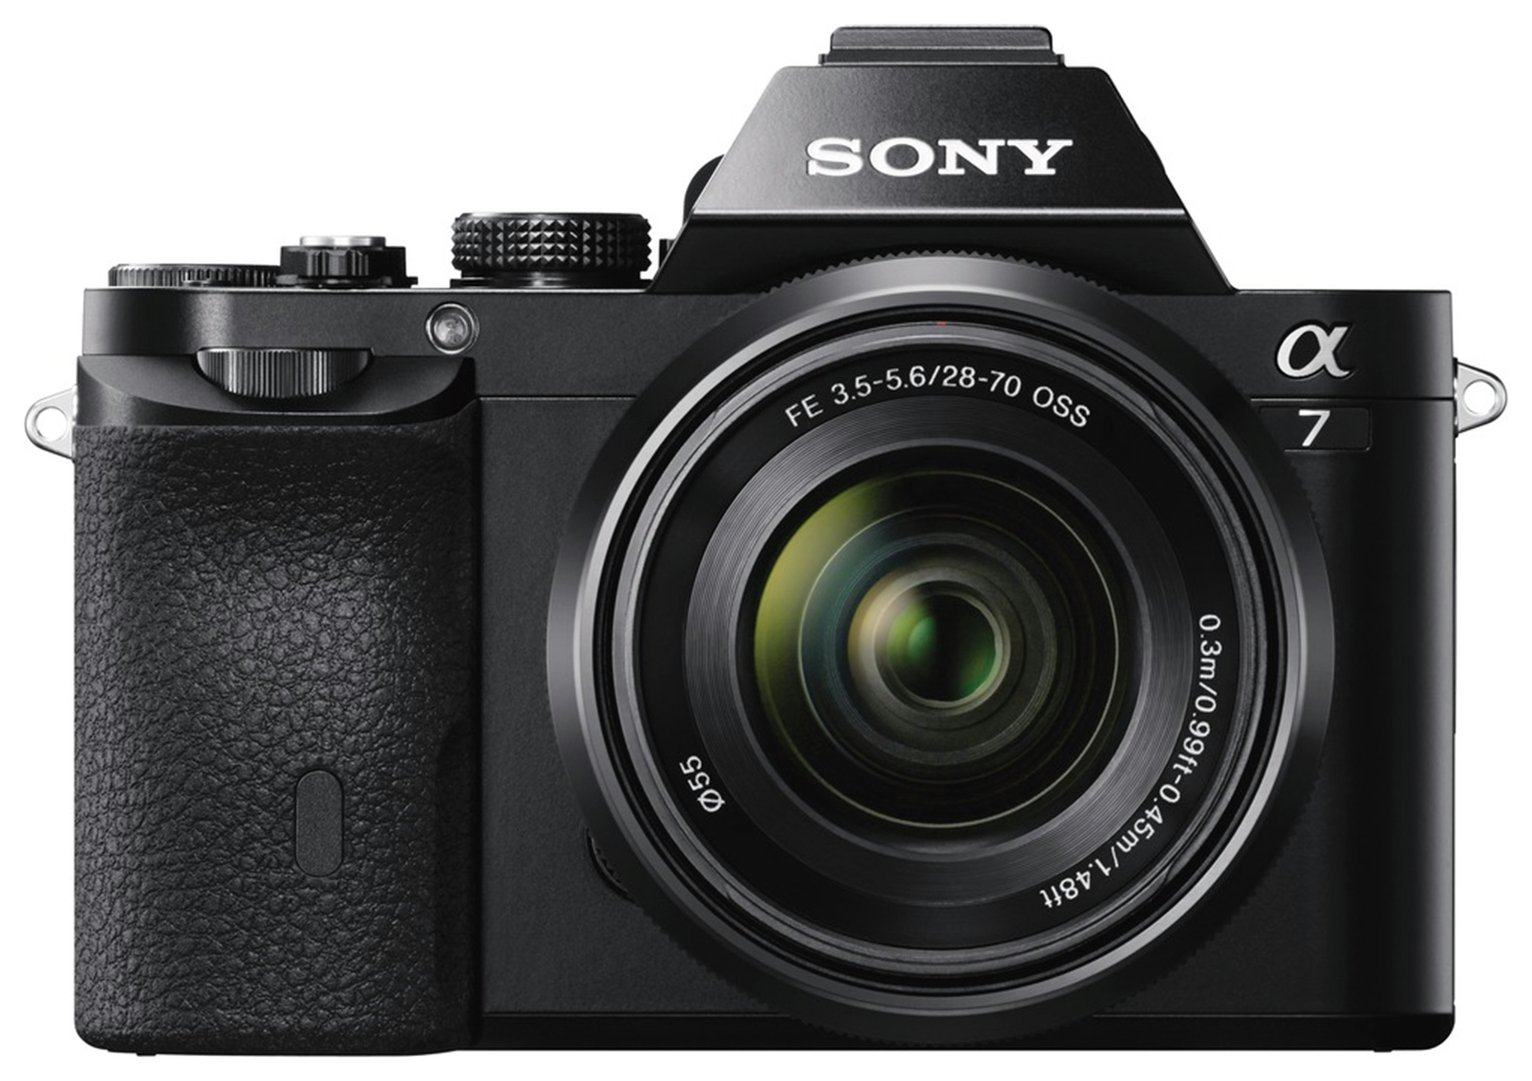 Sony Alpha A7 Mirrorless Camera With 28-70mm Lens